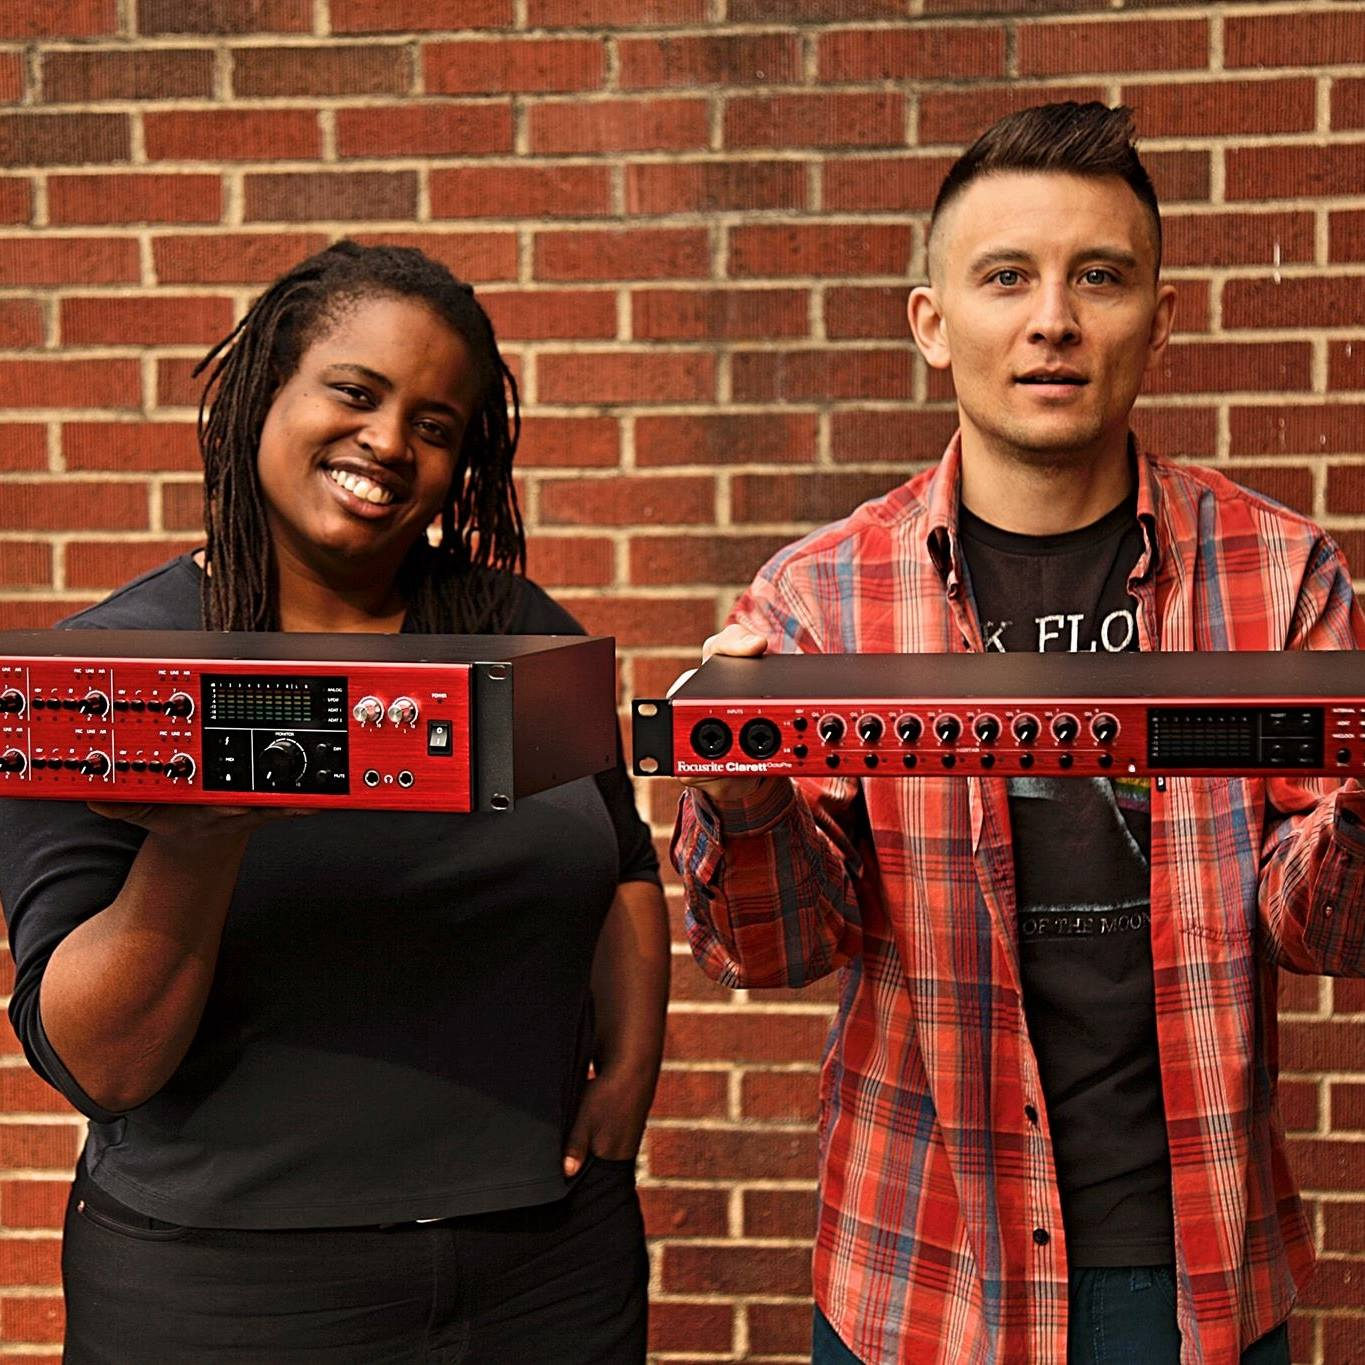 Duo of Focusrite